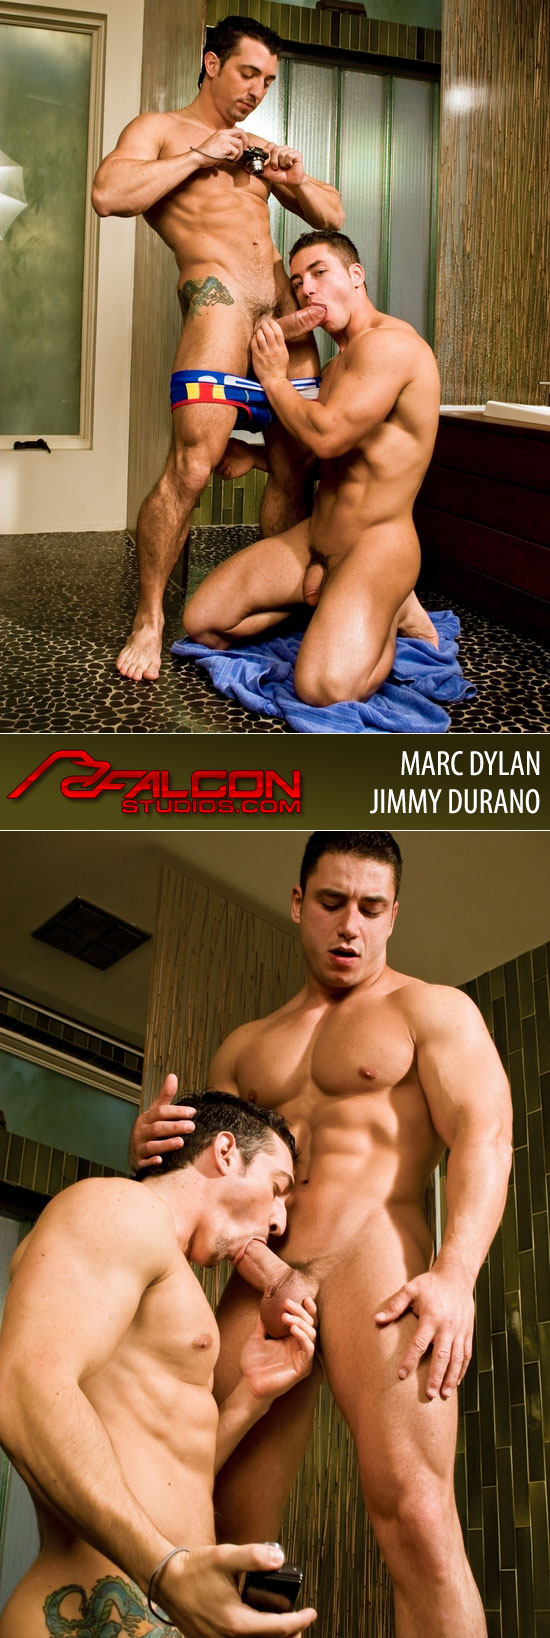 Jimmy Durano and Marc Dylan